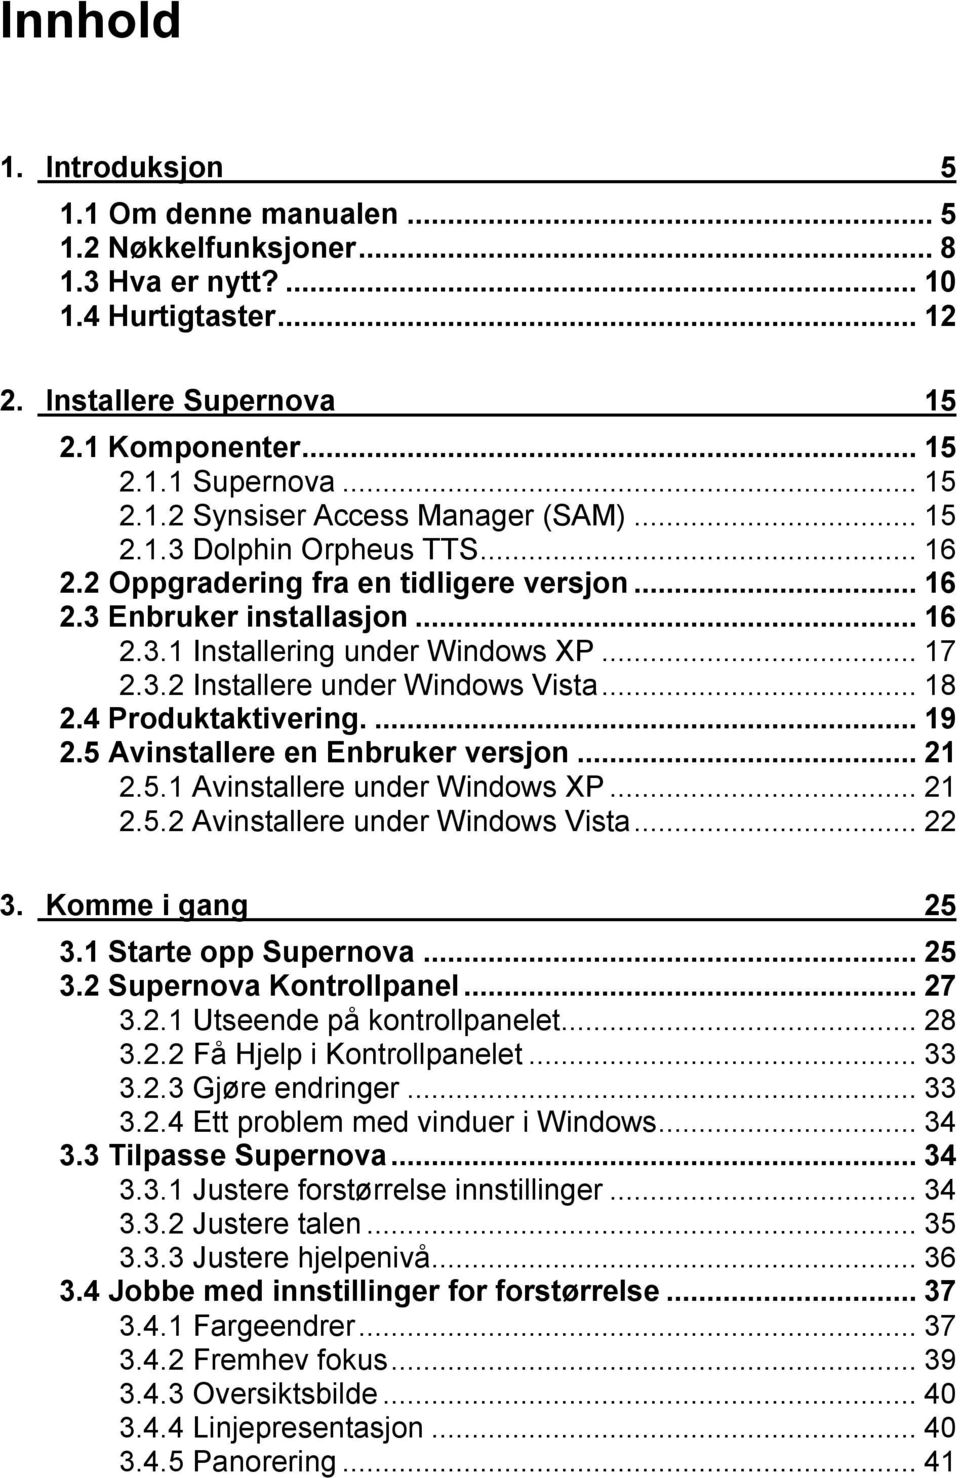 4 Produktaktivering...19 2.5 Avinstallere en Enbruker versjon...21 2.5.1 Avinstallere under Windows XP...21 2.5.2 Avinstallere under Windows Vista...22 3. Komme i gang 25 3.1 Starte opp Supernova.